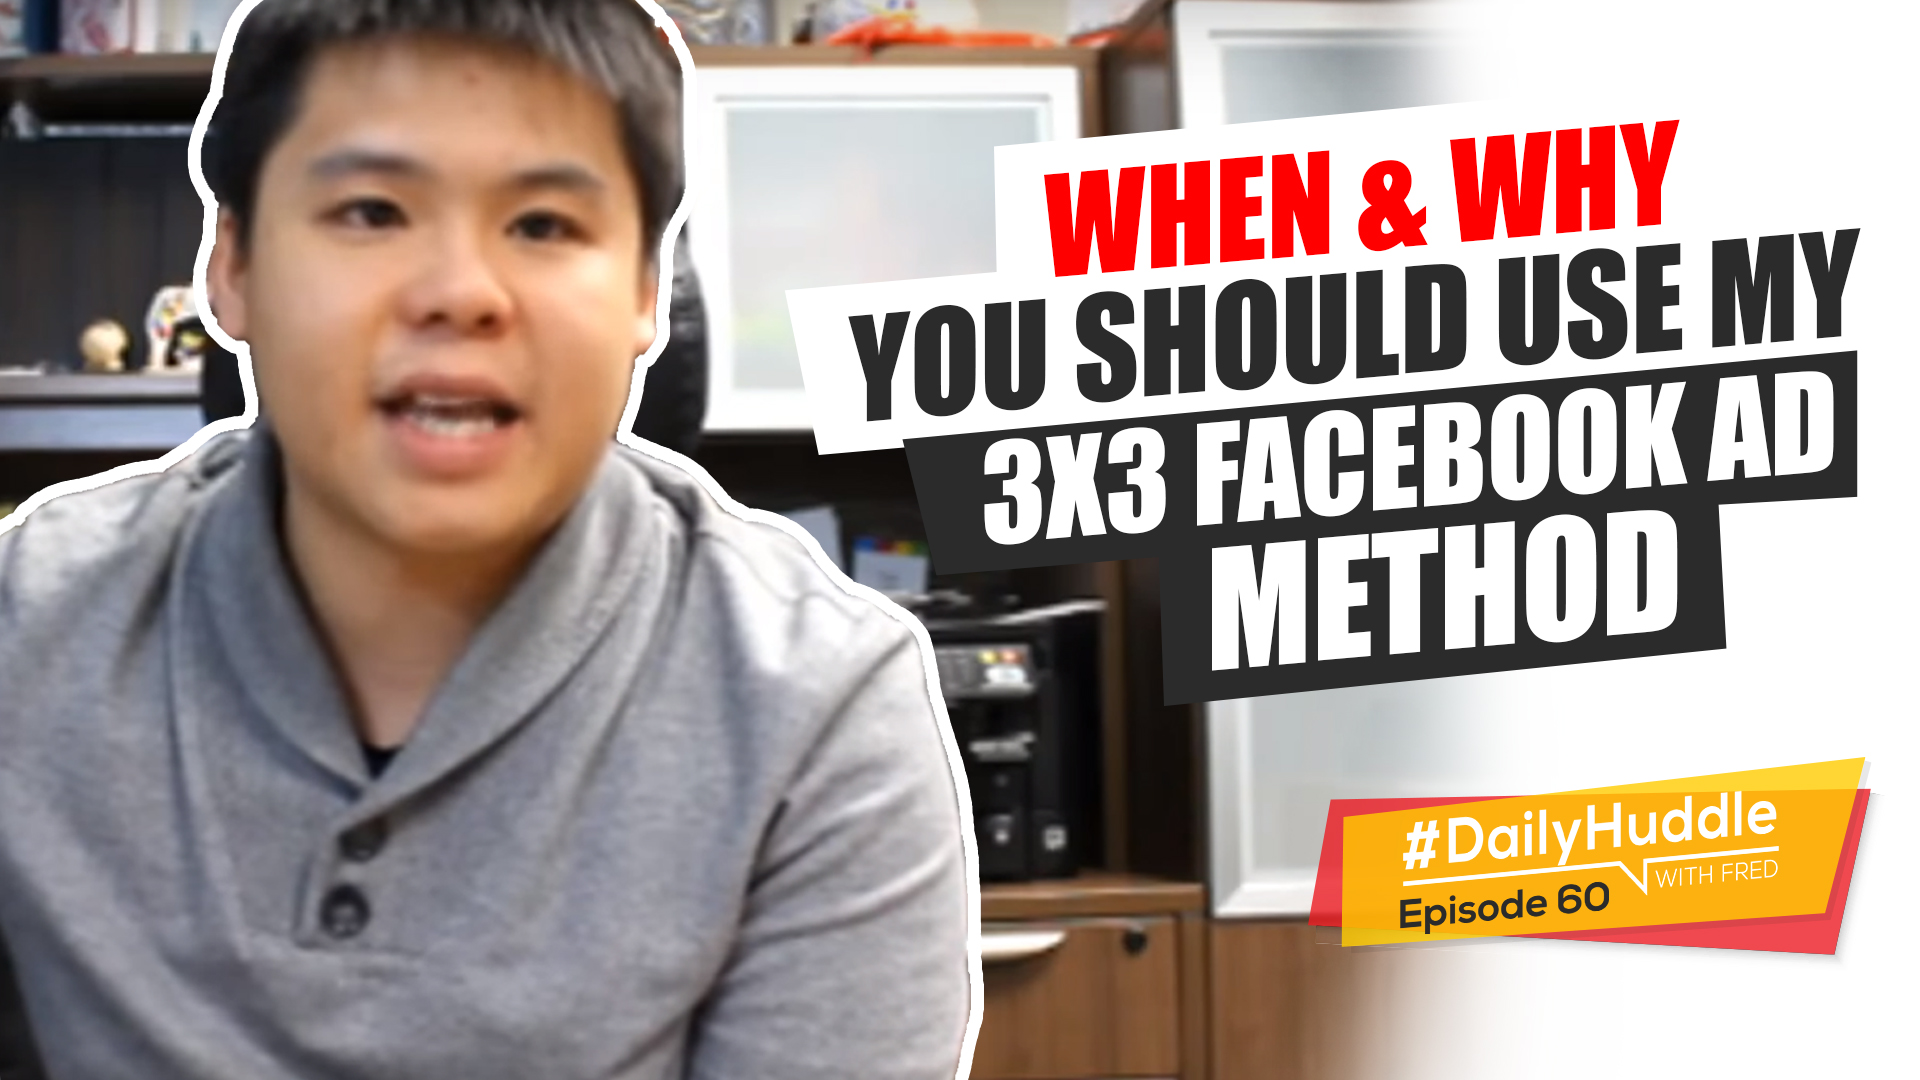 Daily Huddle - Ep 60 | When & Why You Should Use My 3x3 Facebook Ad Method